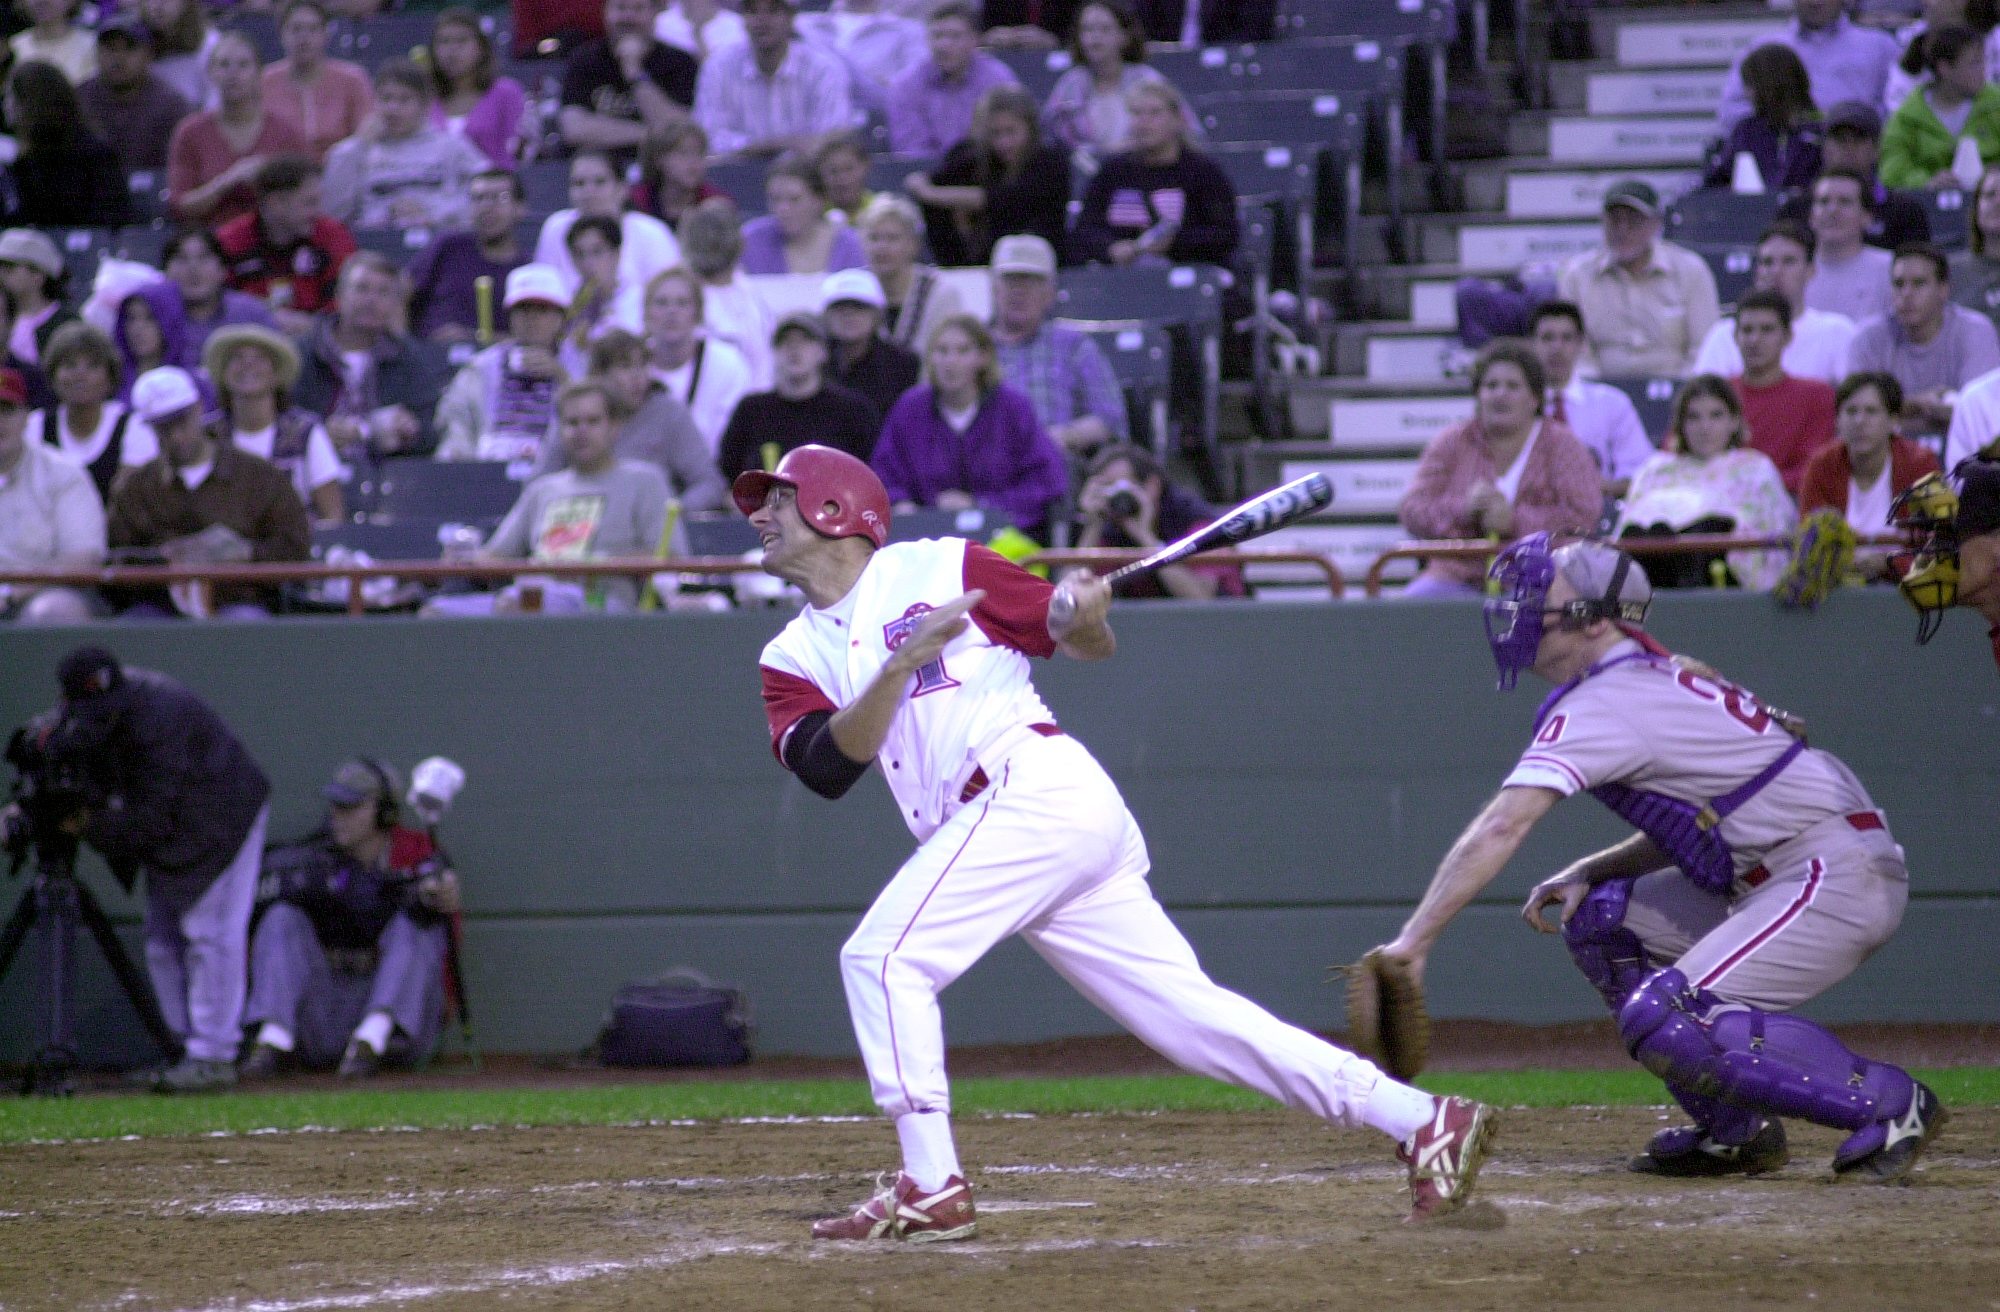 Baseball8(DG)072600 -- Steve Largent, R-Okla., takes a swing at home plate during the 39th Annual Congressional Baseball Game.